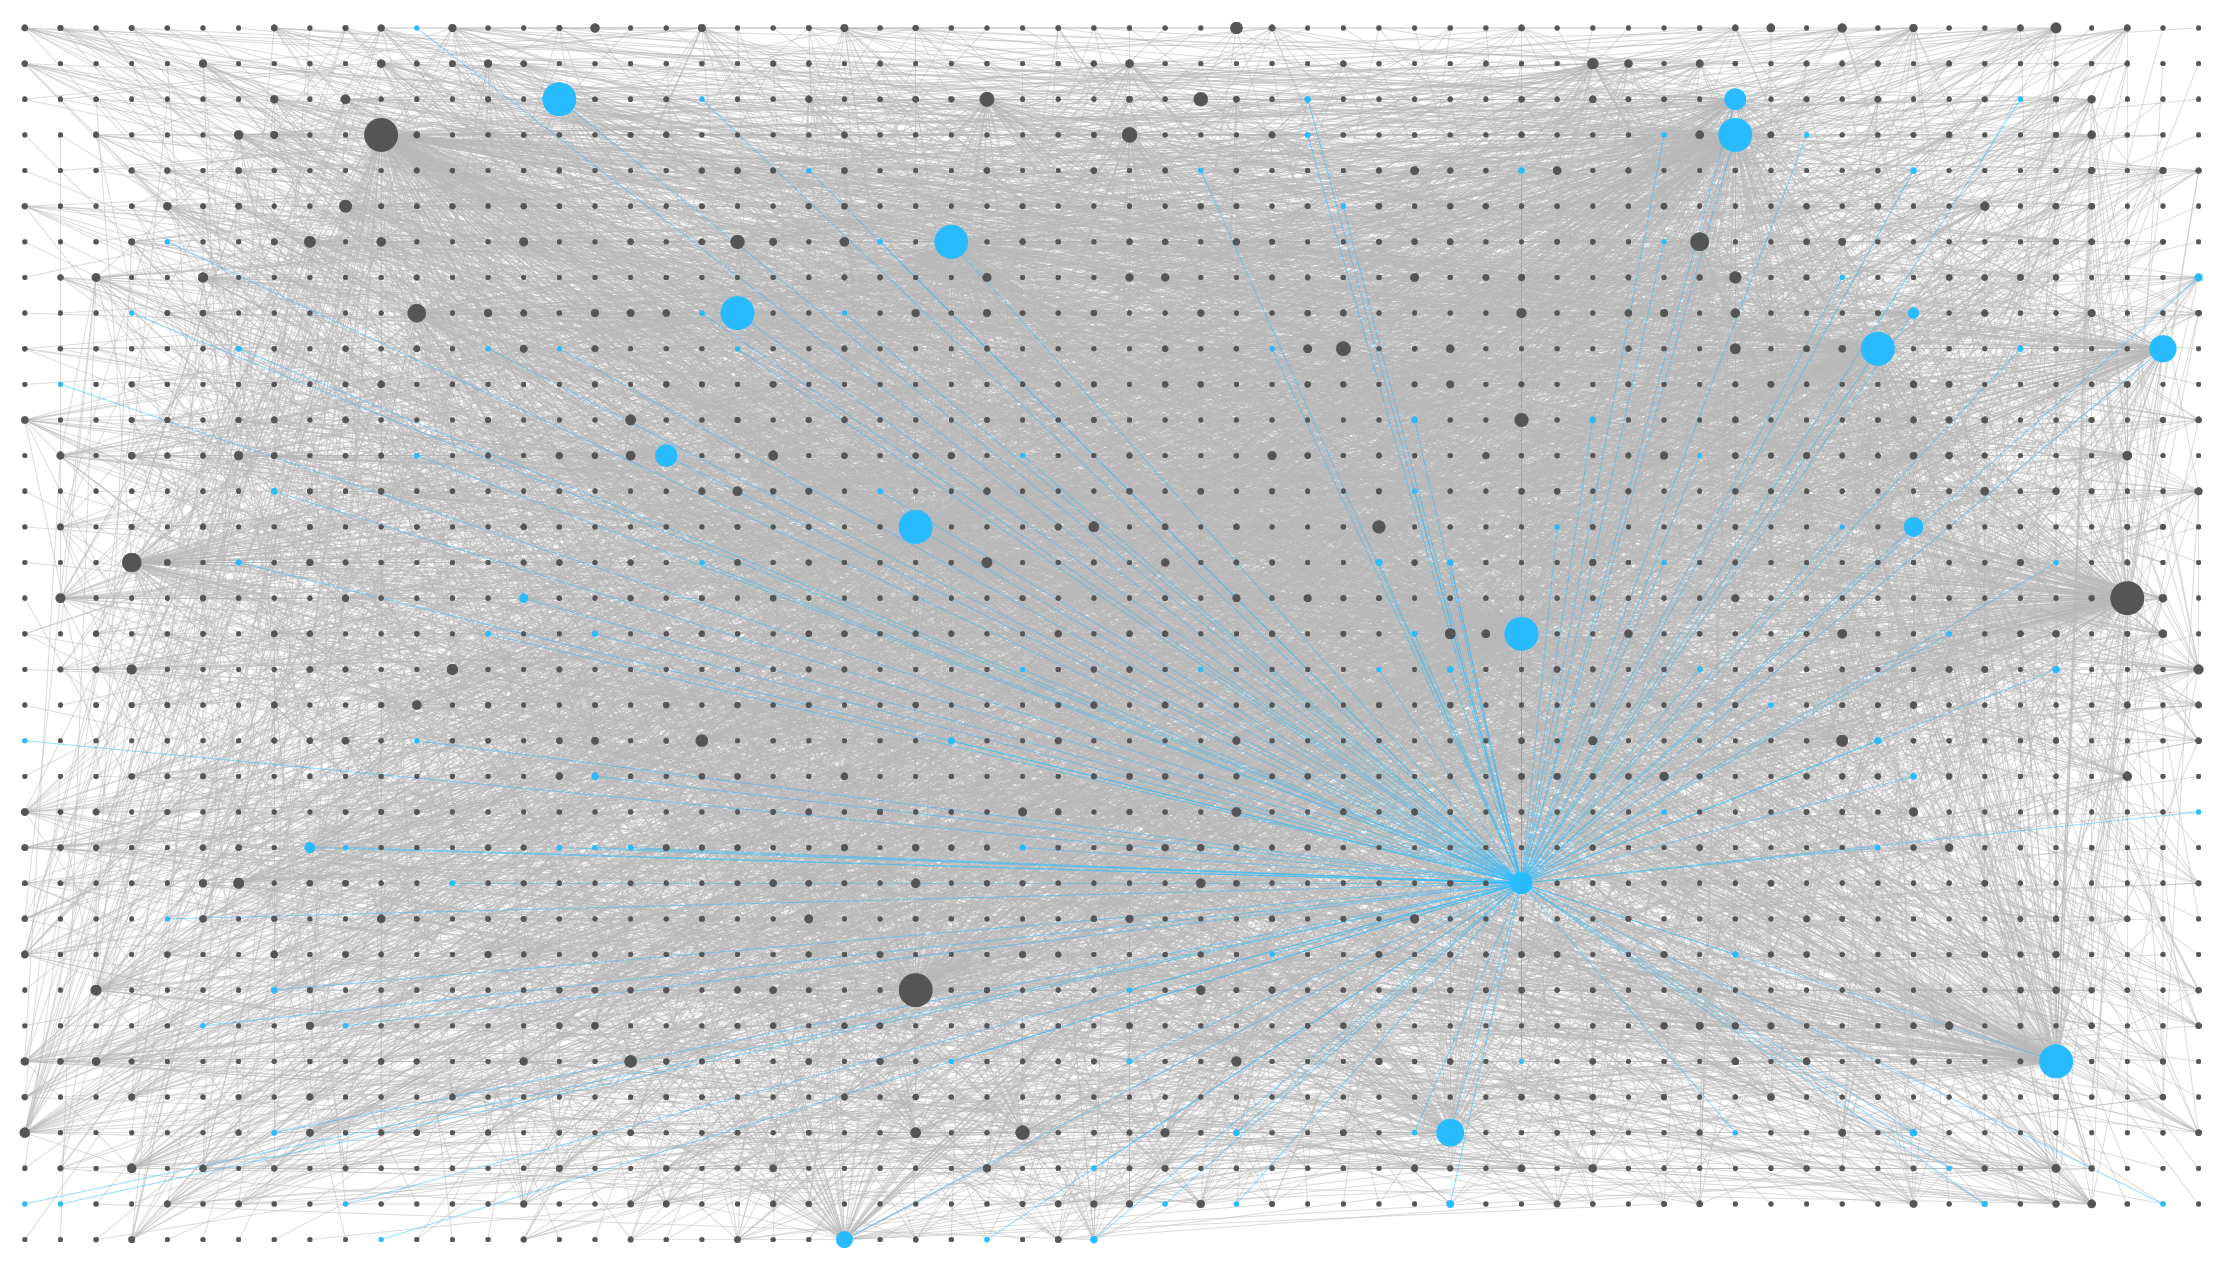 An image of the graph of my ideas in Roam Research.